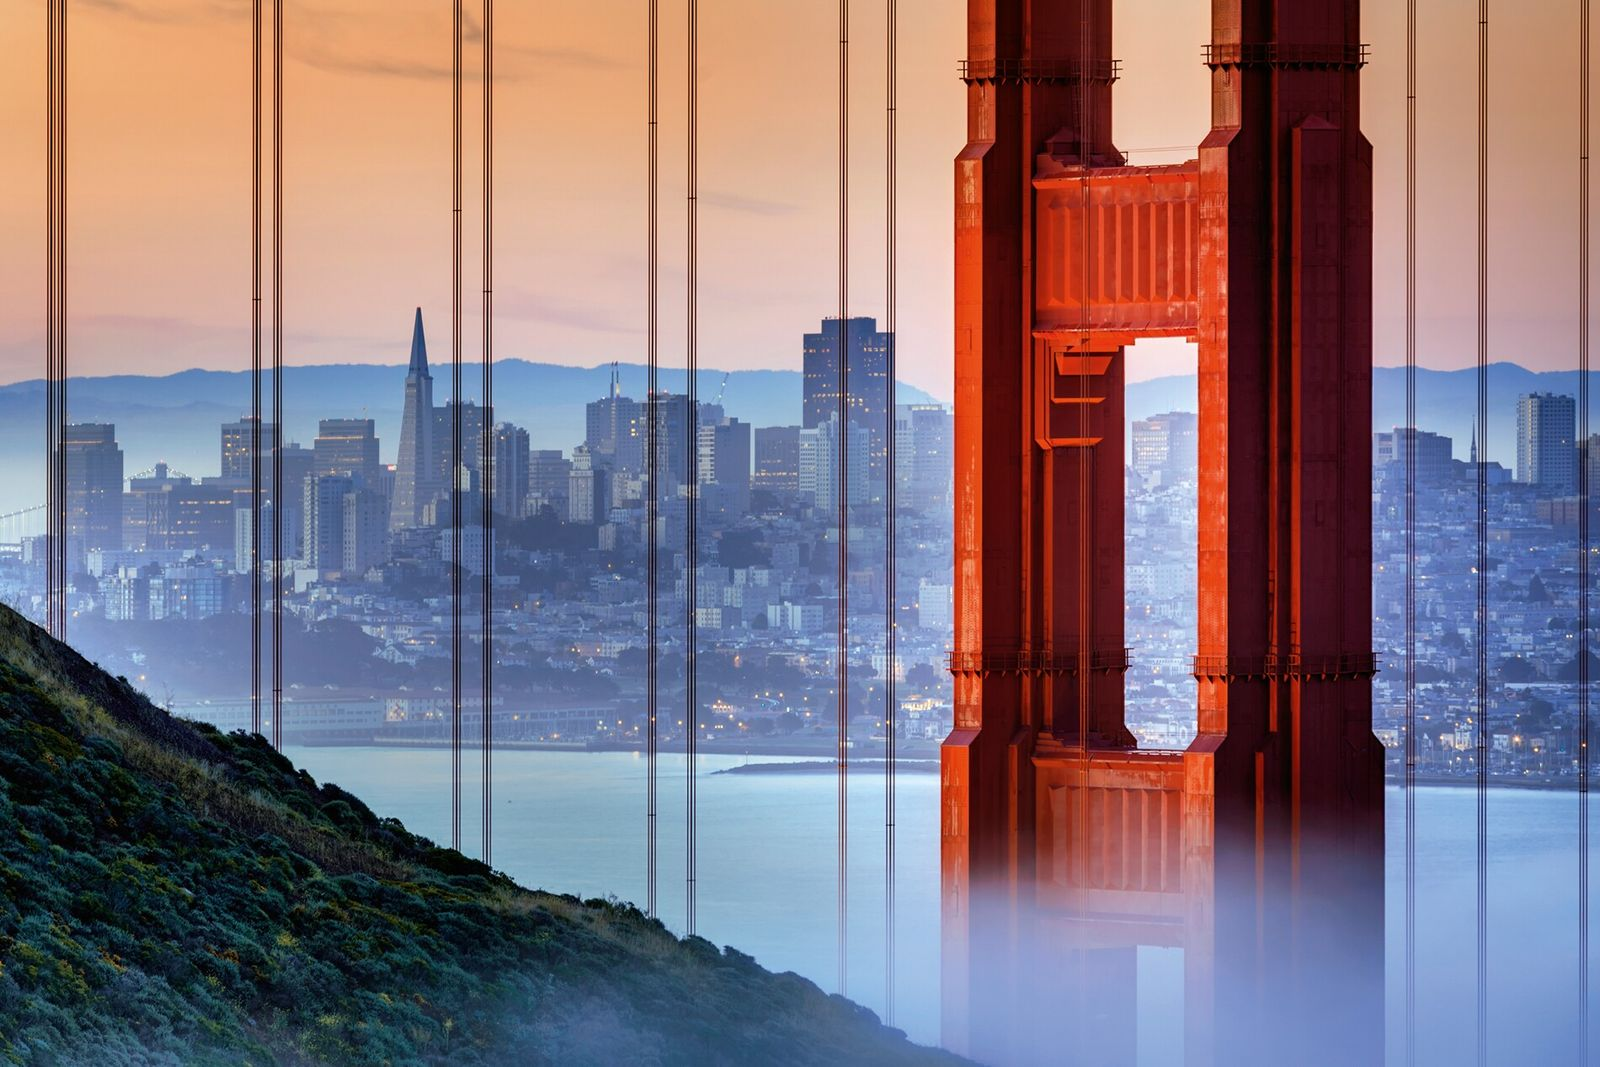 One of the world's most iconic cities, San Francisco is a town of progressives, pioneers, hippies ...